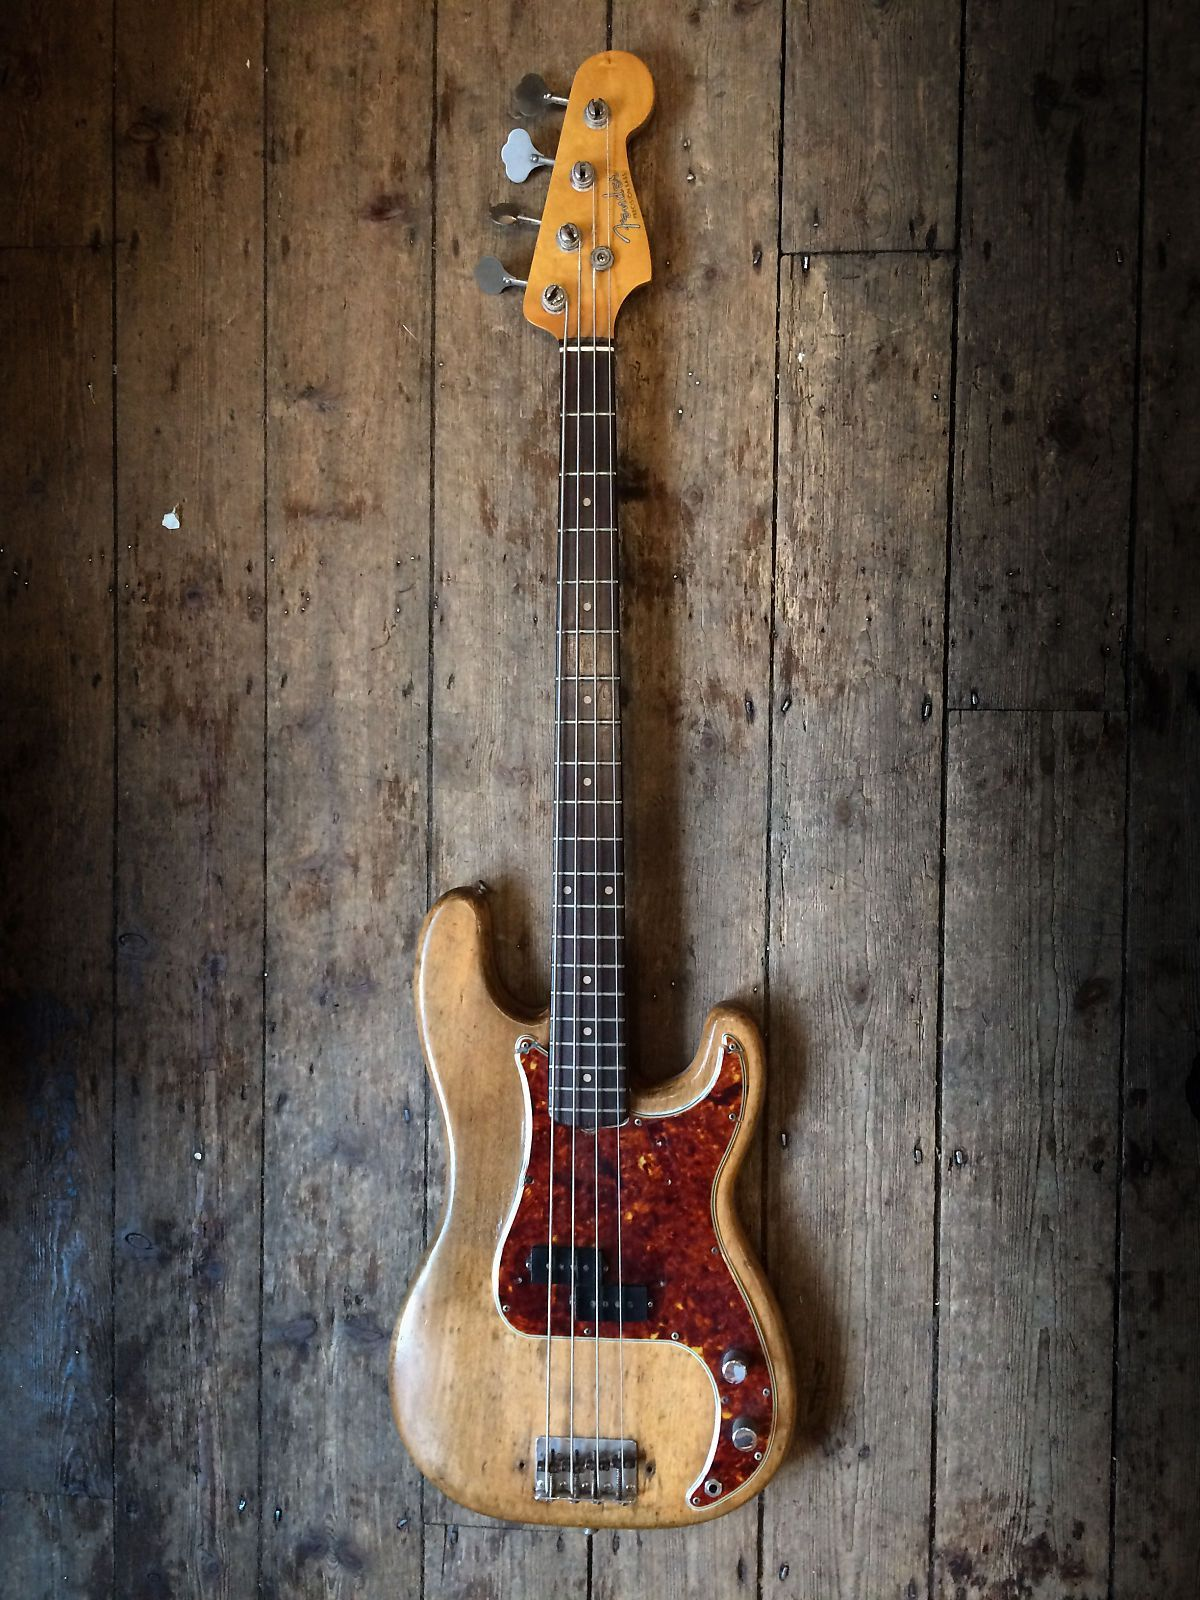 New Kings Road Vintage Guitars Europe S Premier Vintage Guitar Emporium Are Pleased To Be Offer For Sale Thi Fender Precision Bass Vintage Bass Guitars Guitar